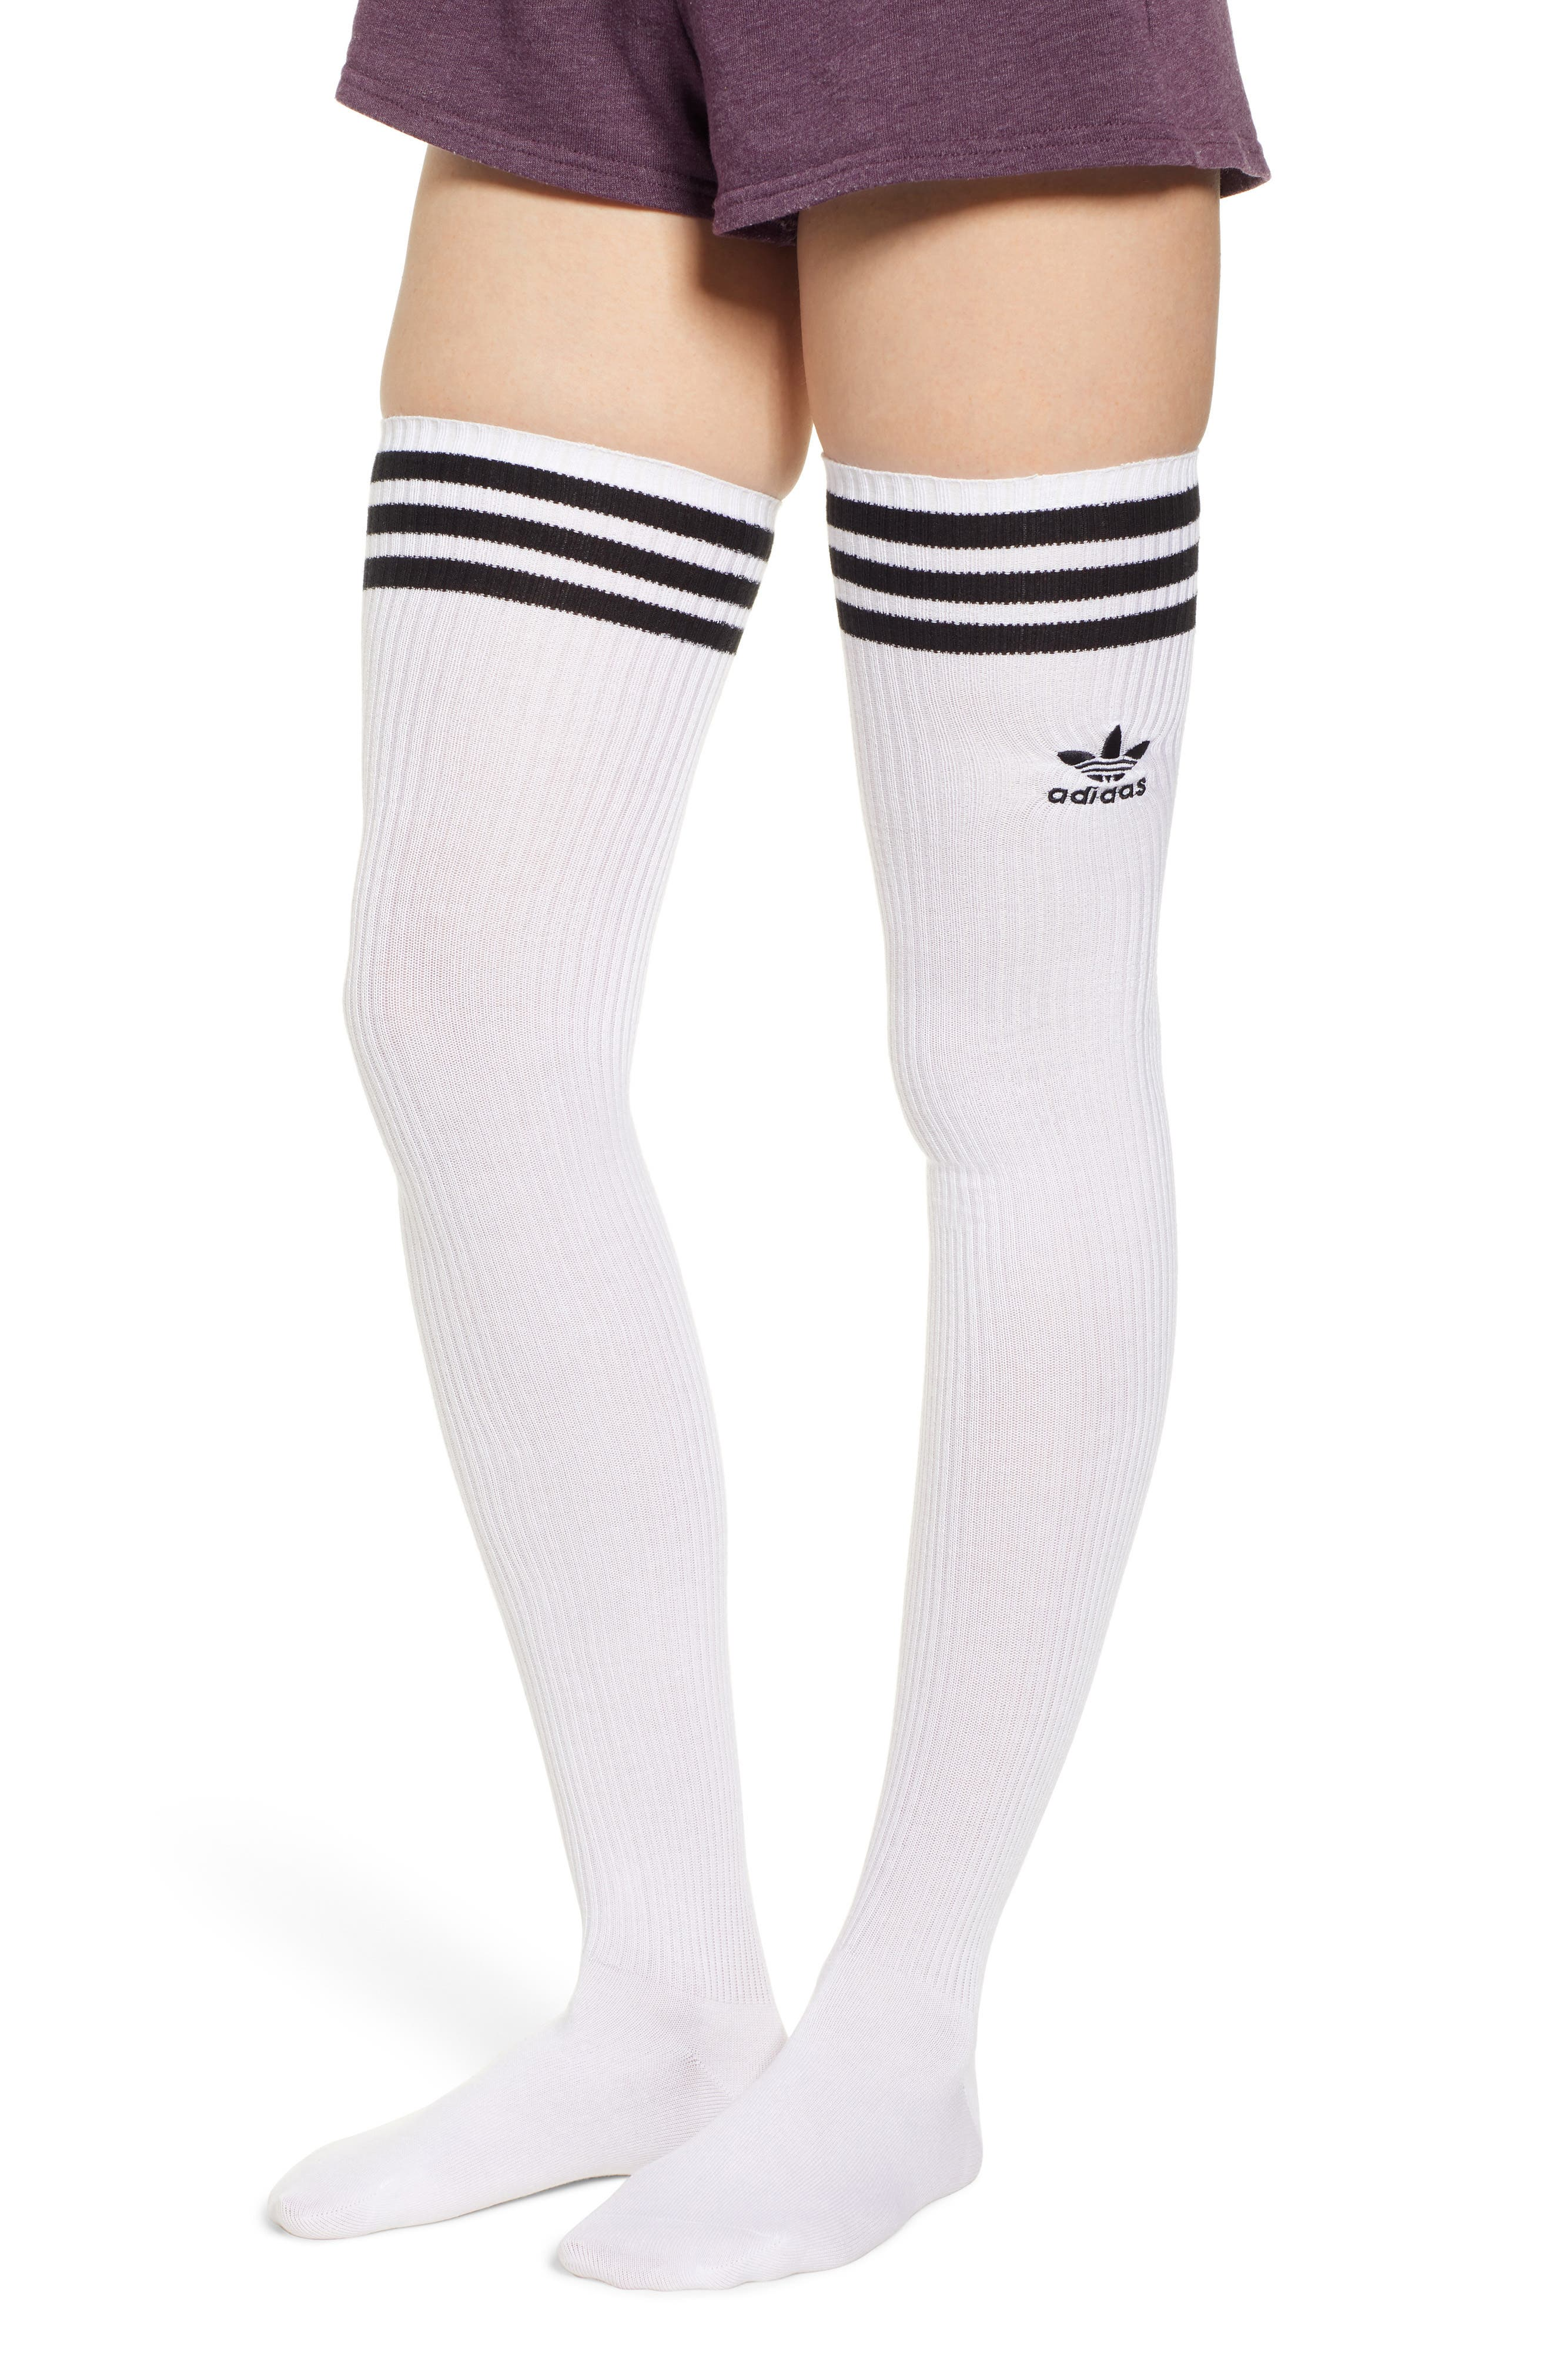 7f5d2a954c902 over the knee socks